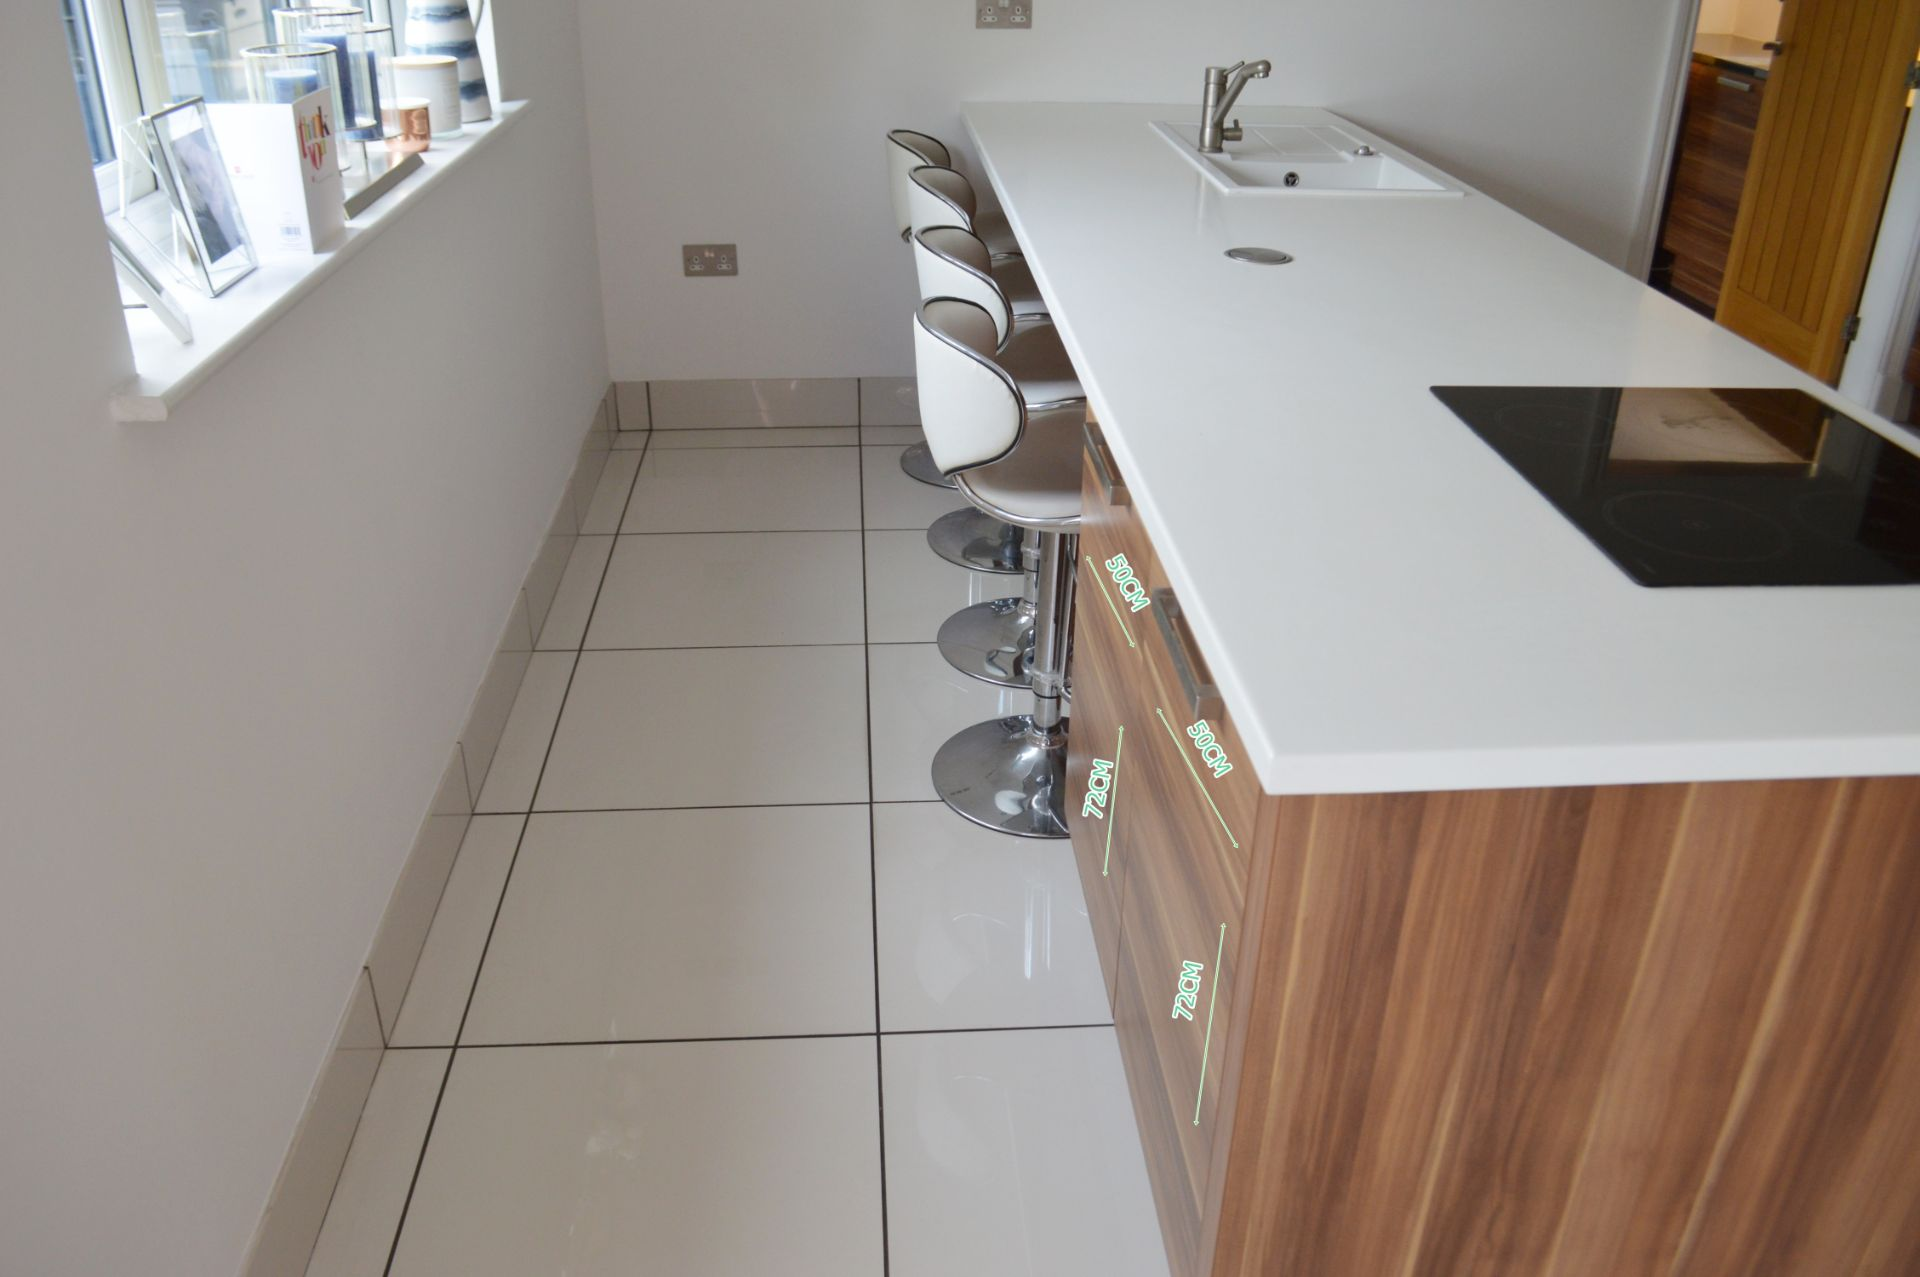 1 x Contemporary Bespoke Fitted Kitchen With Integrated Neff Branded Appliances, Quartz Worktops - Image 15 of 52